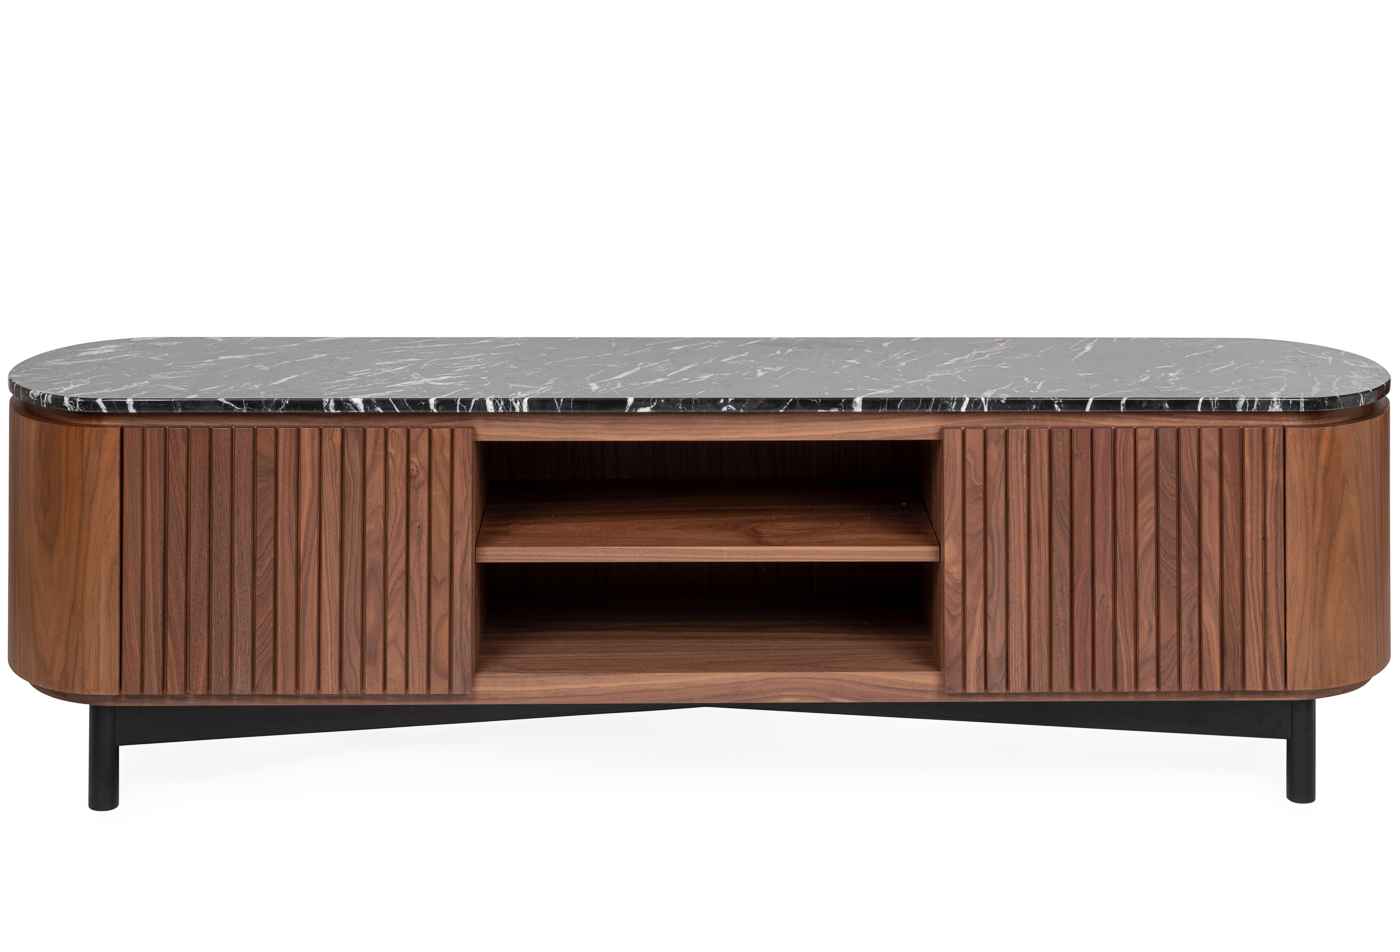 Remi AV unit walnut and black marble top large - Front profile.